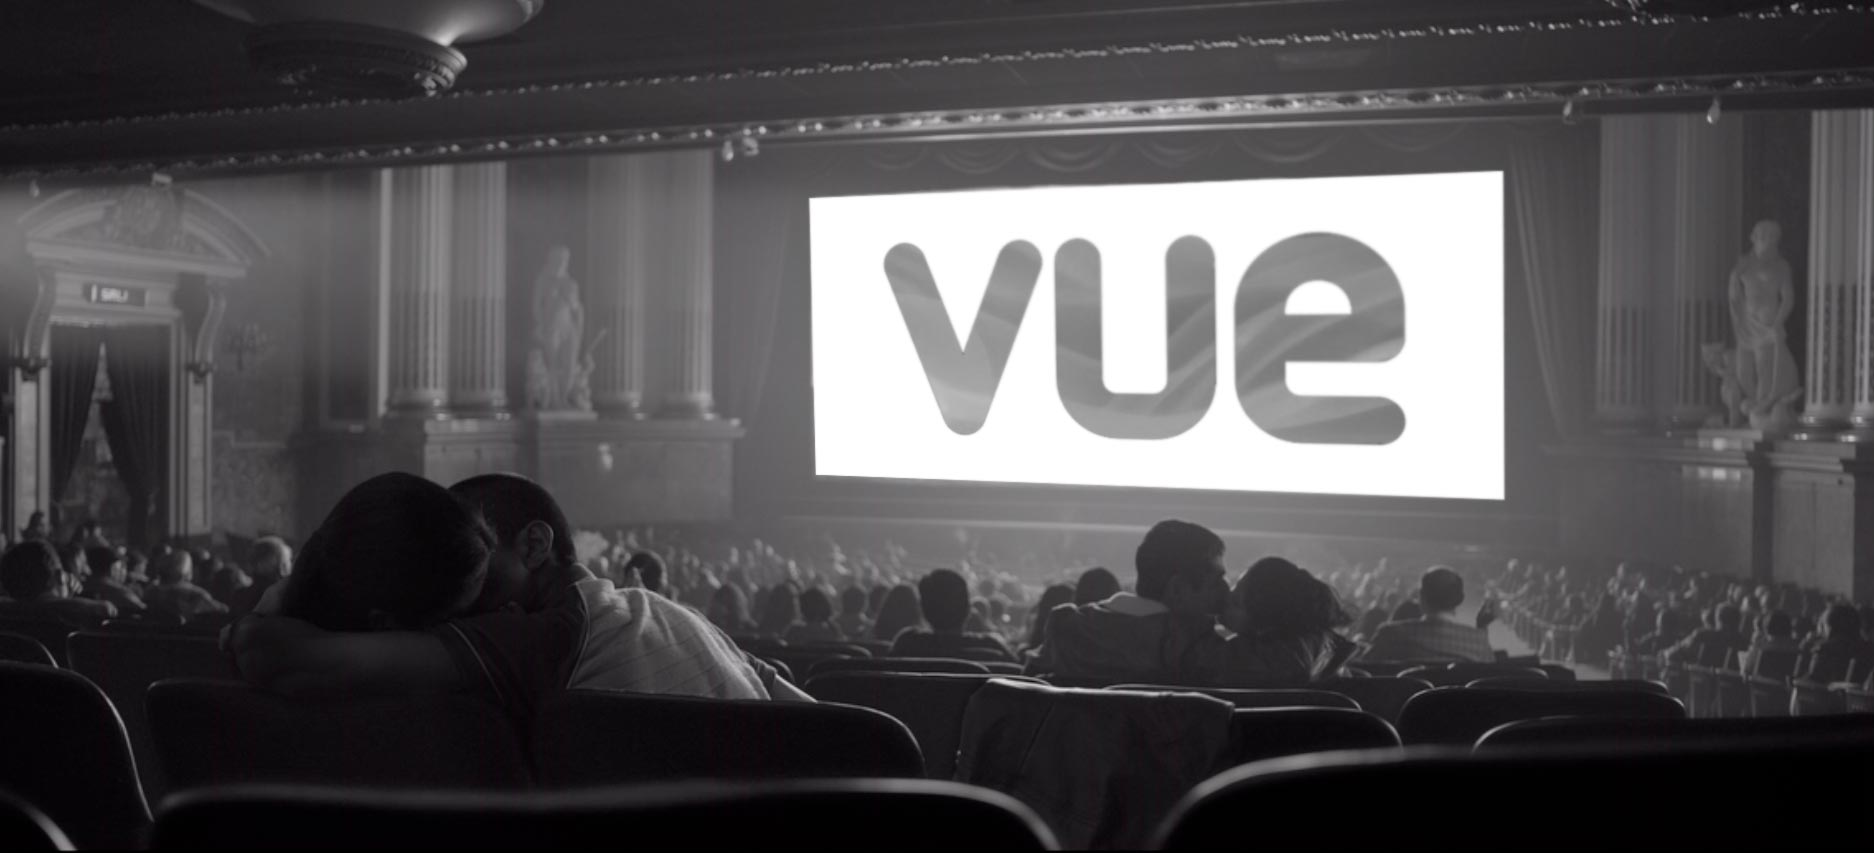 Vue Cinemas in the UK Childishly Threatens to Boycott BAFTAs for Rewarding 'Roma'